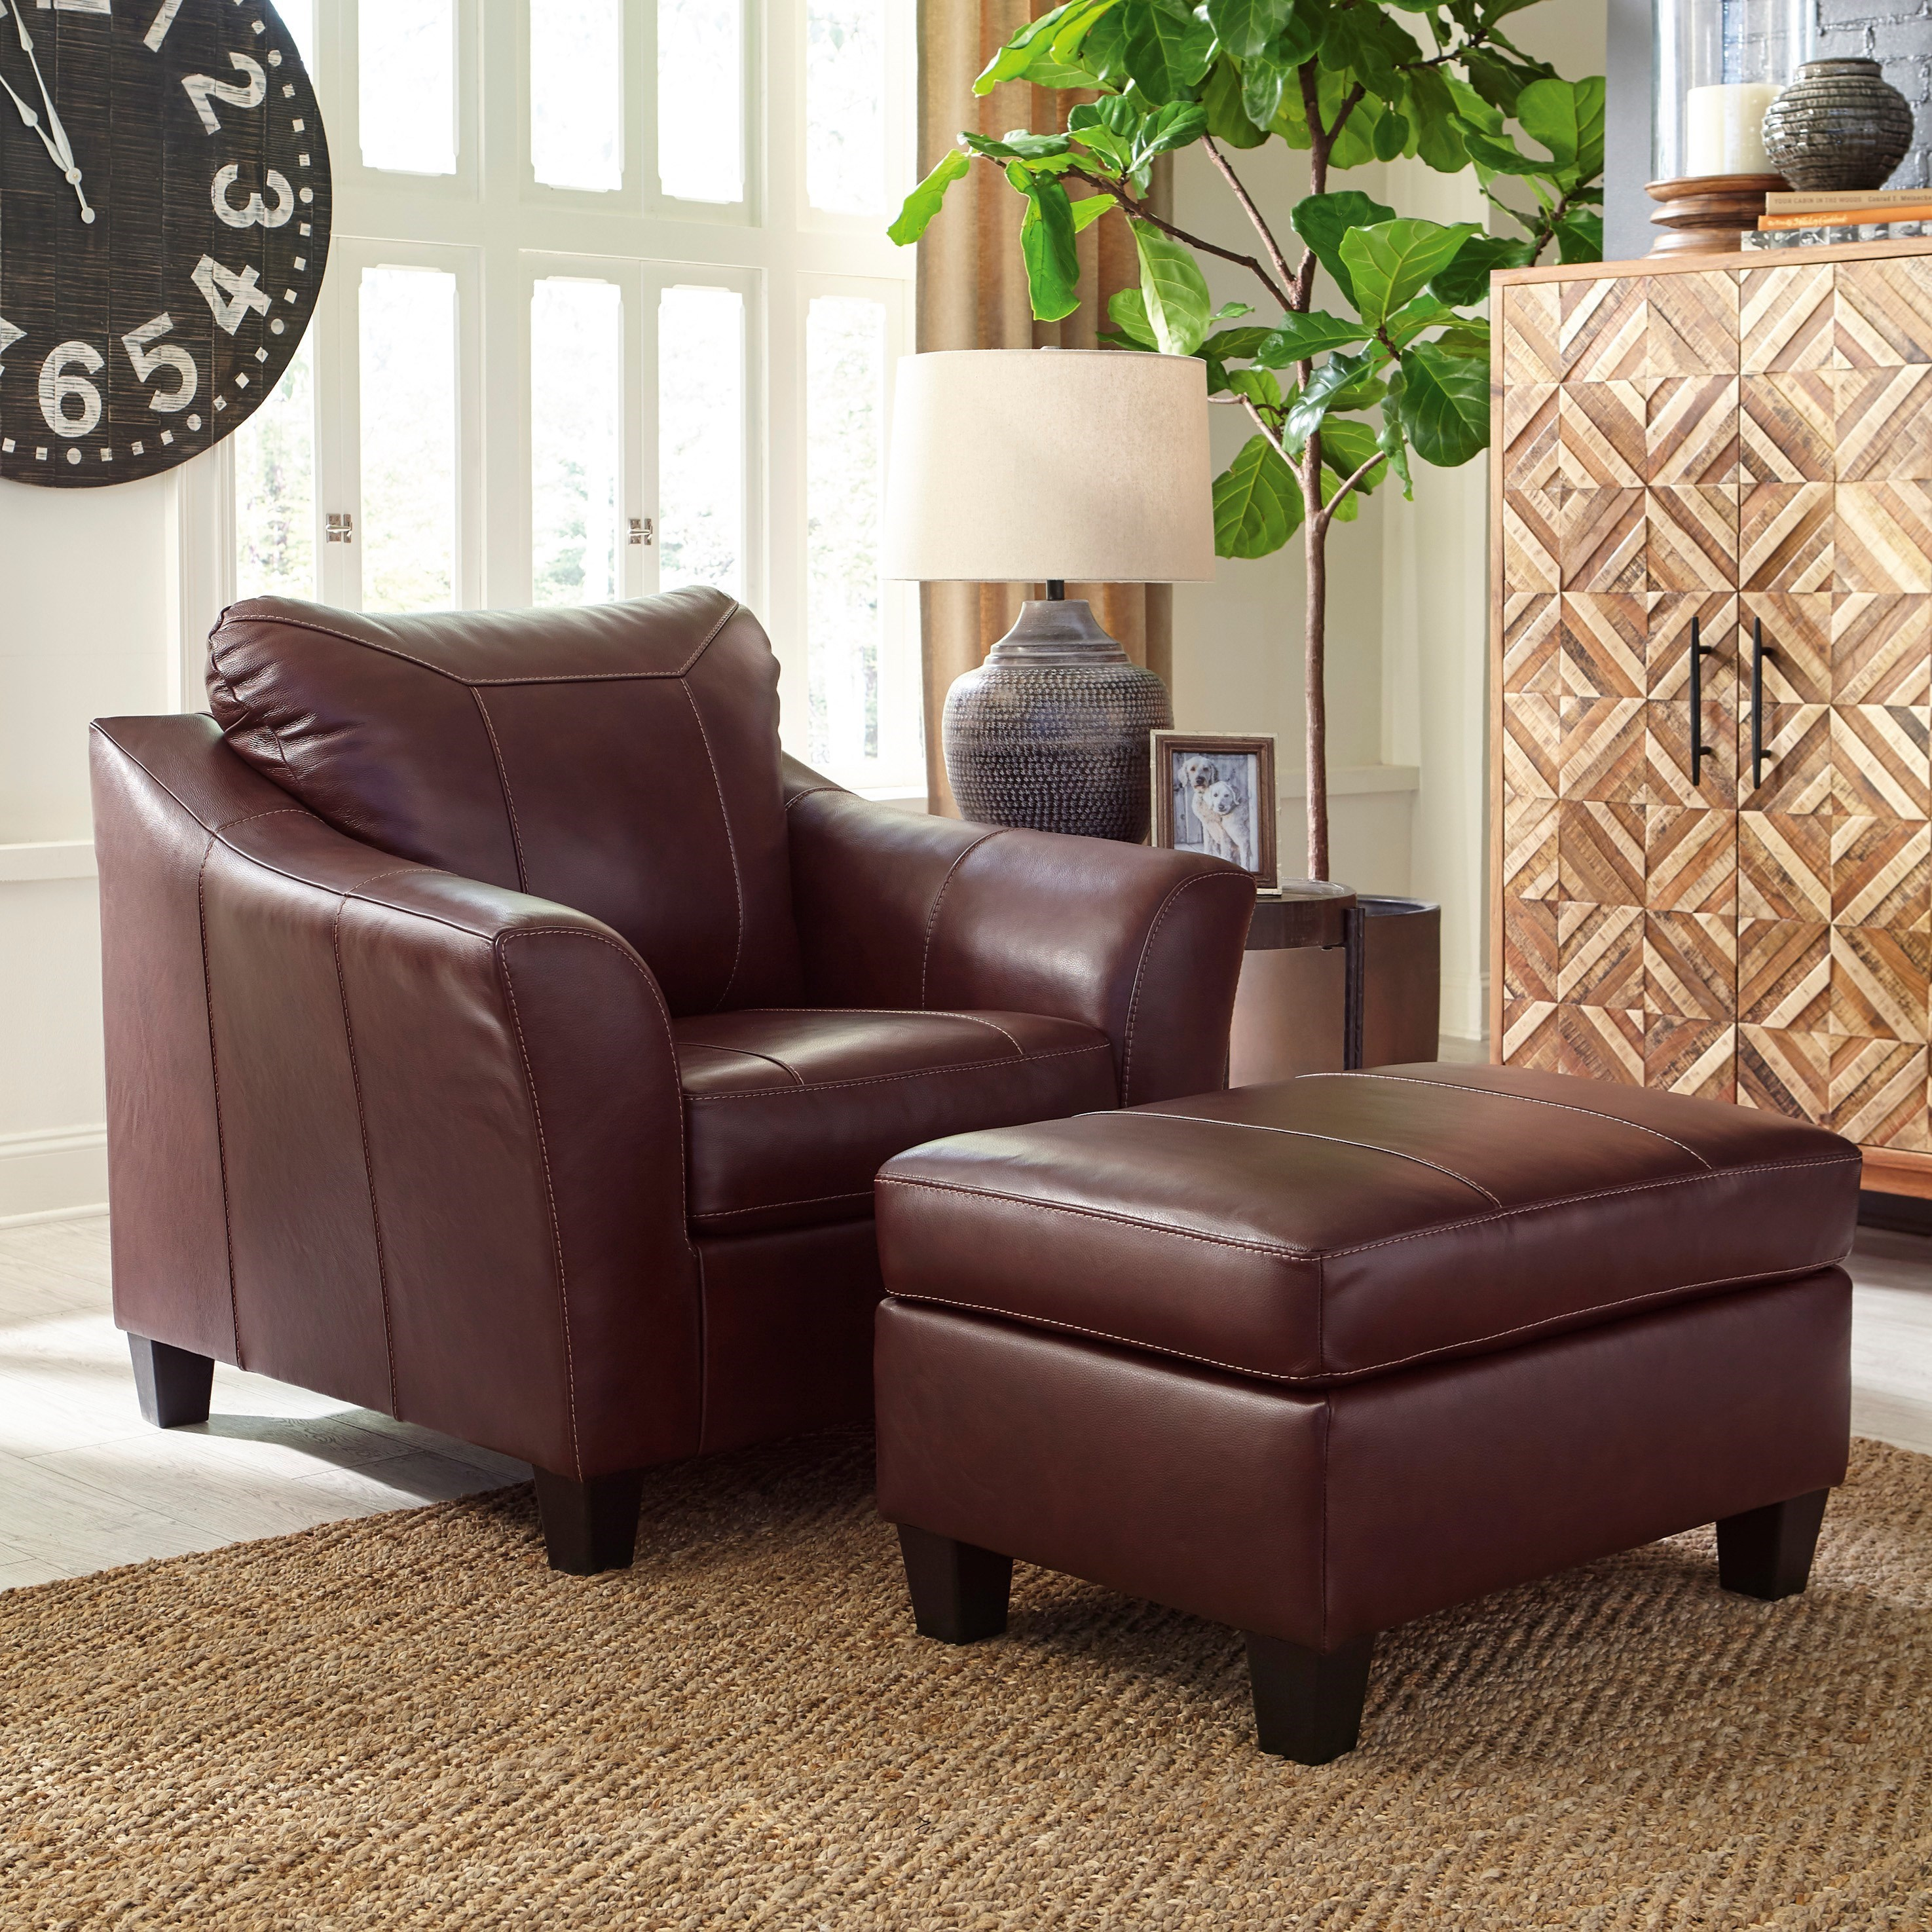 Fortney Chair and Ottoman Set by Ashley (Signature Design) at Johnny Janosik